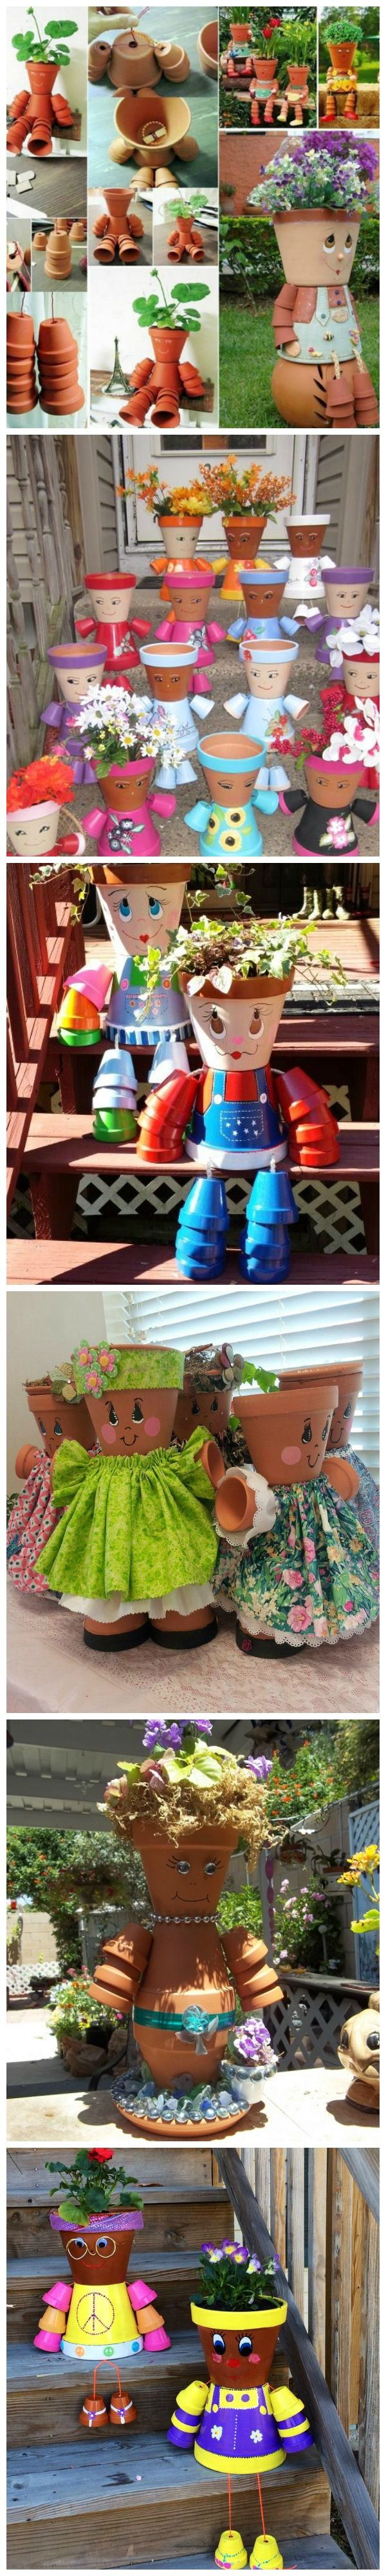 How to make Clay Pot Flower People                                                                                                                                                                                 More